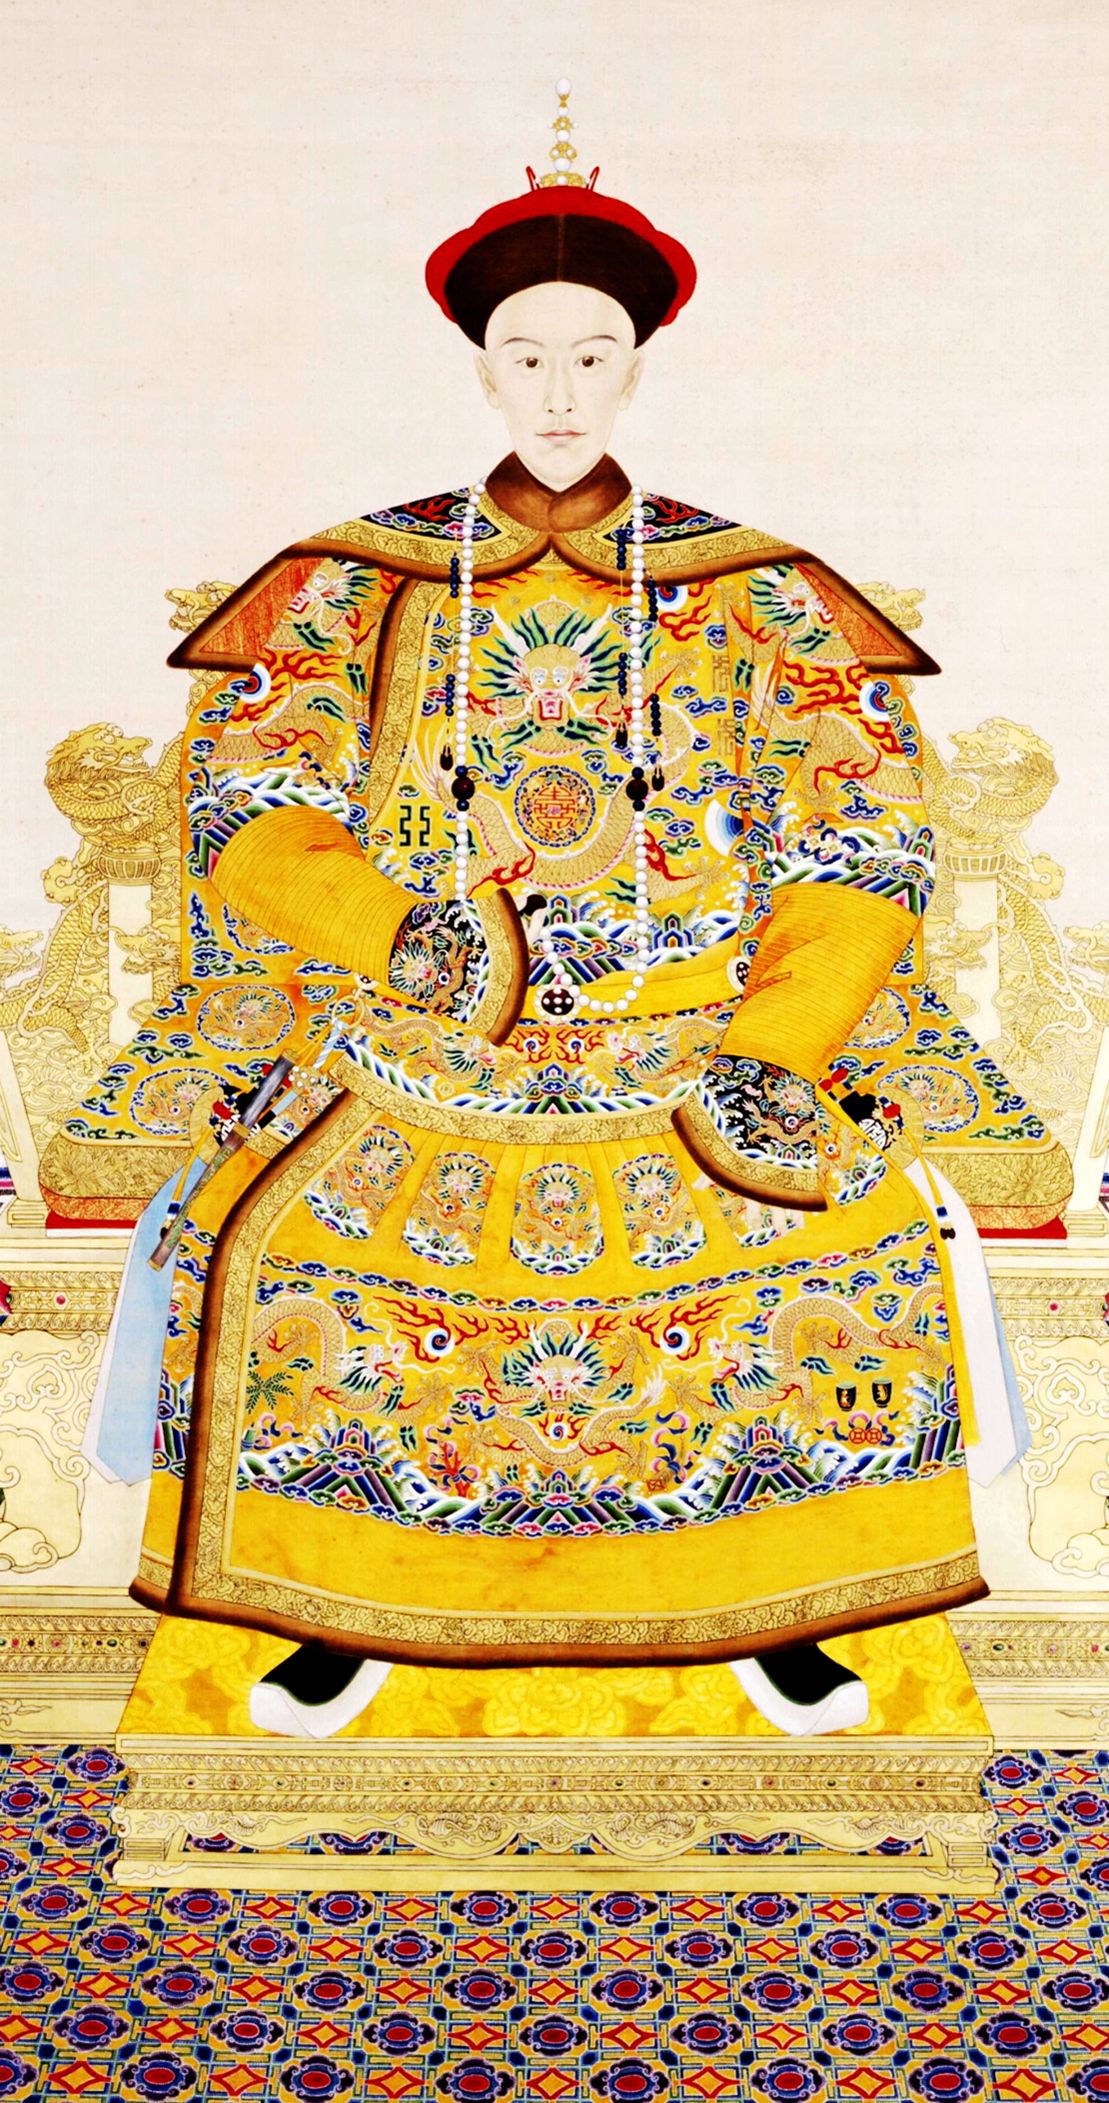 The Emperor Seven Tarot Cards From Different Packs Other: List Of Emperors Of The Qing Dynasty